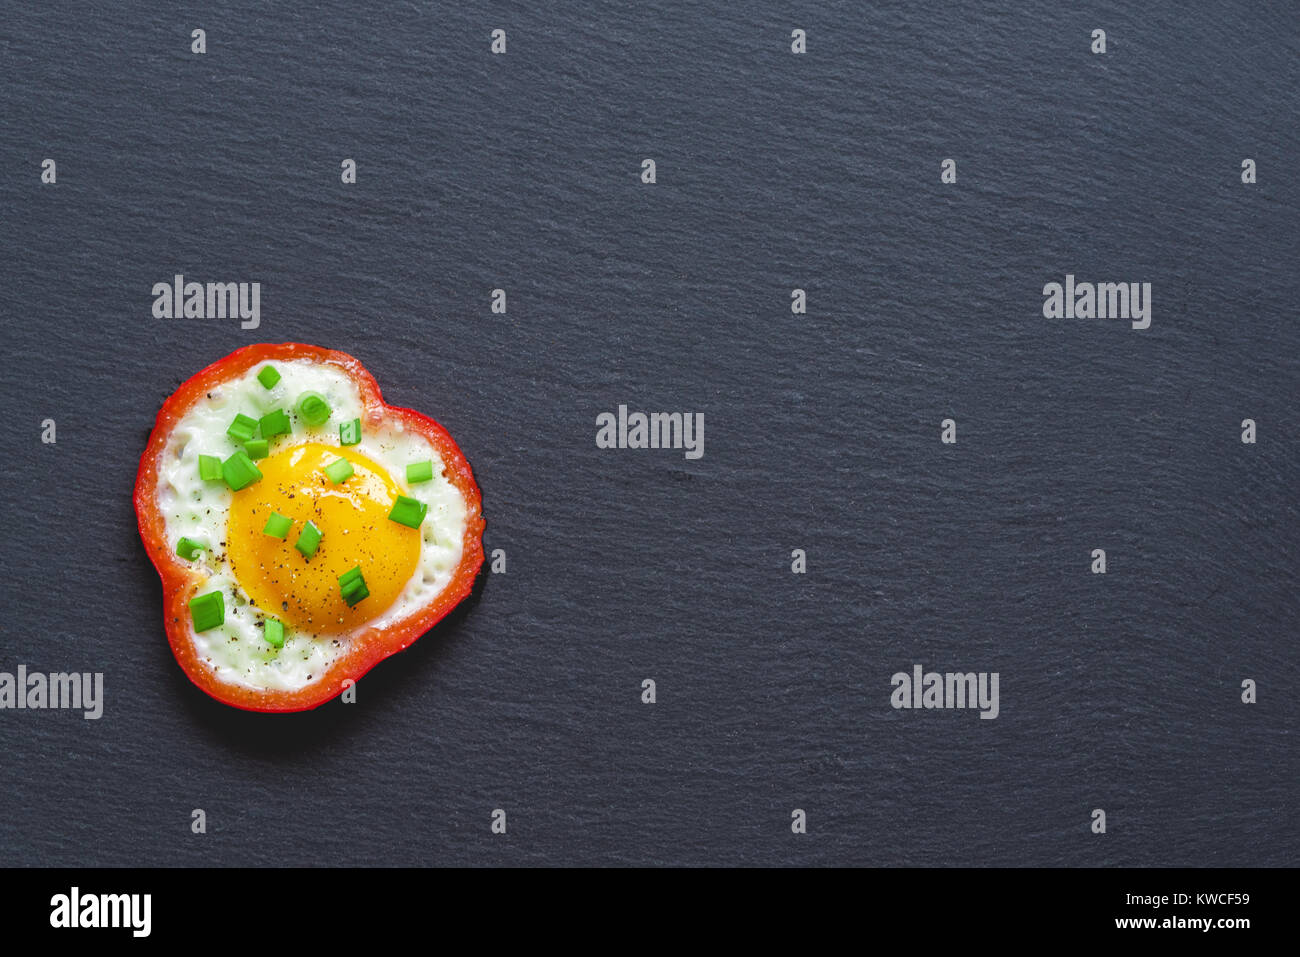 Fried eggs with red sweet pepper and chives on a black slate background. Top view. - Stock Image